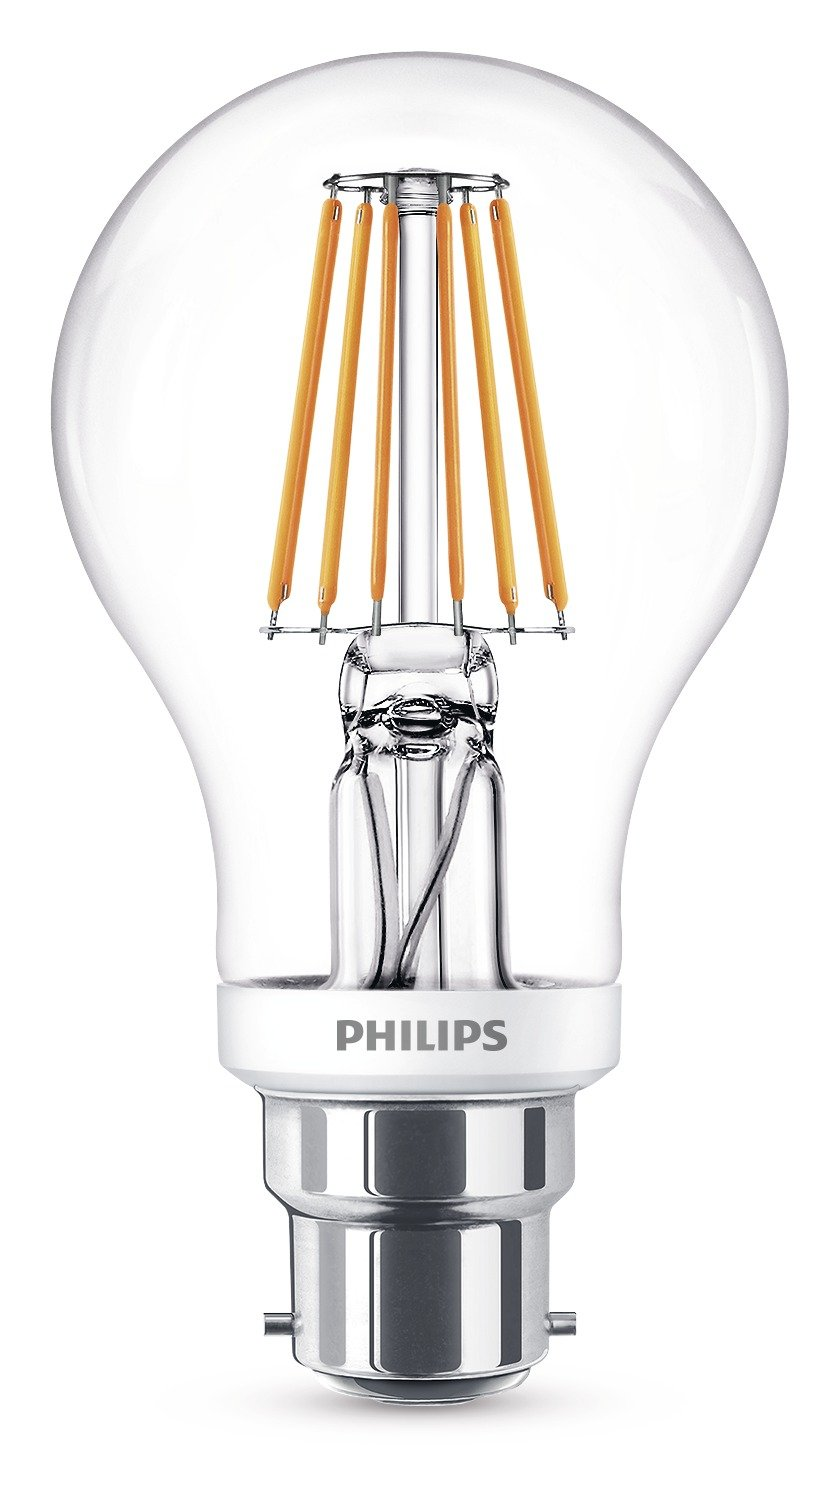 Philips led classic dimmable b22 bayonet cap clear filament light philips led classic dimmable b22 bayonet cap clear filament light bulb 75 w 60 w warm white philips amazon lighting parisarafo Images